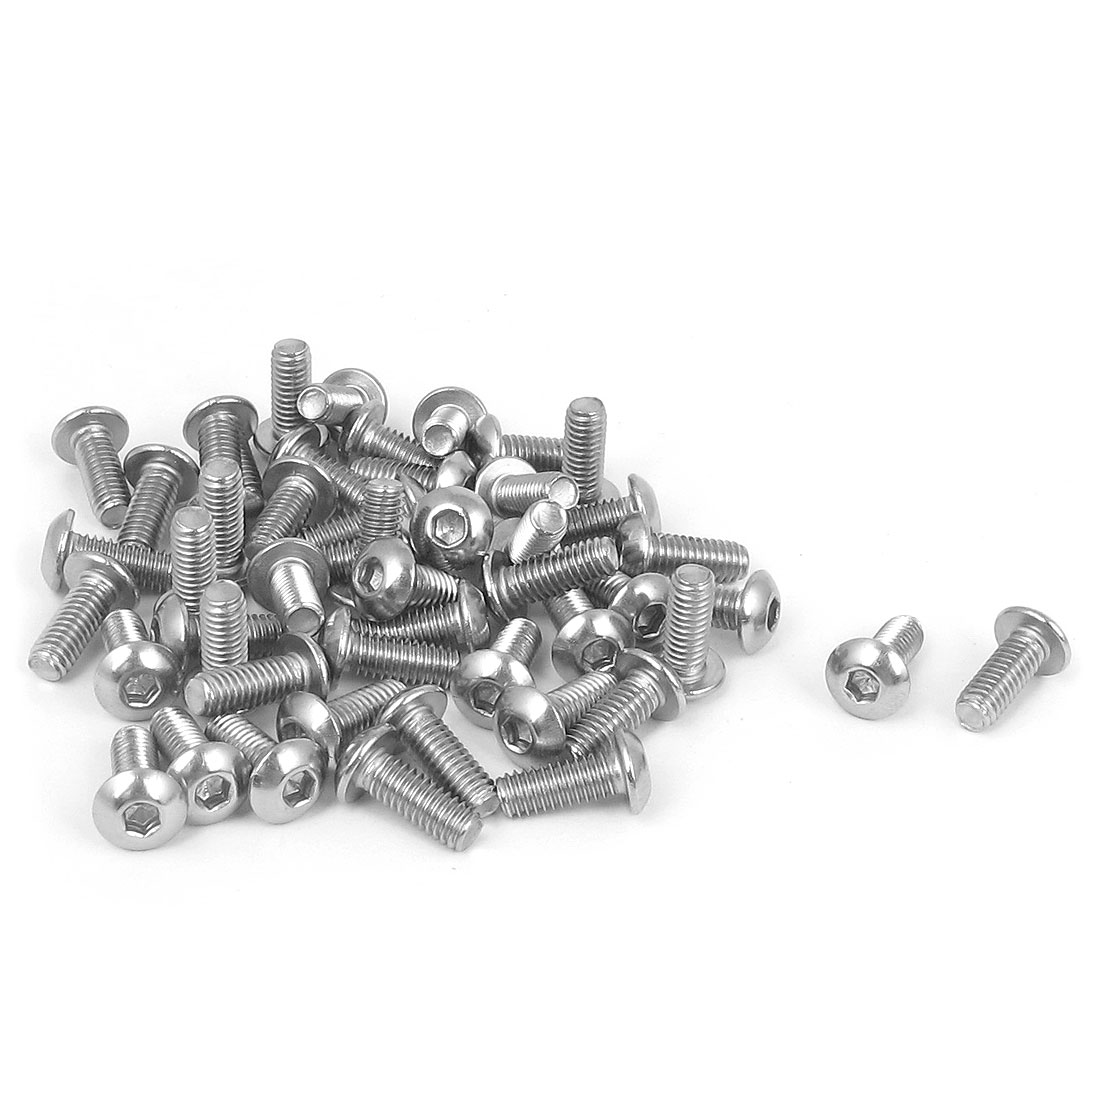 M4x10mm 304 Stainless Steel Hex Socket Machine Countersunk Round Head Screw Bolts 50PCS